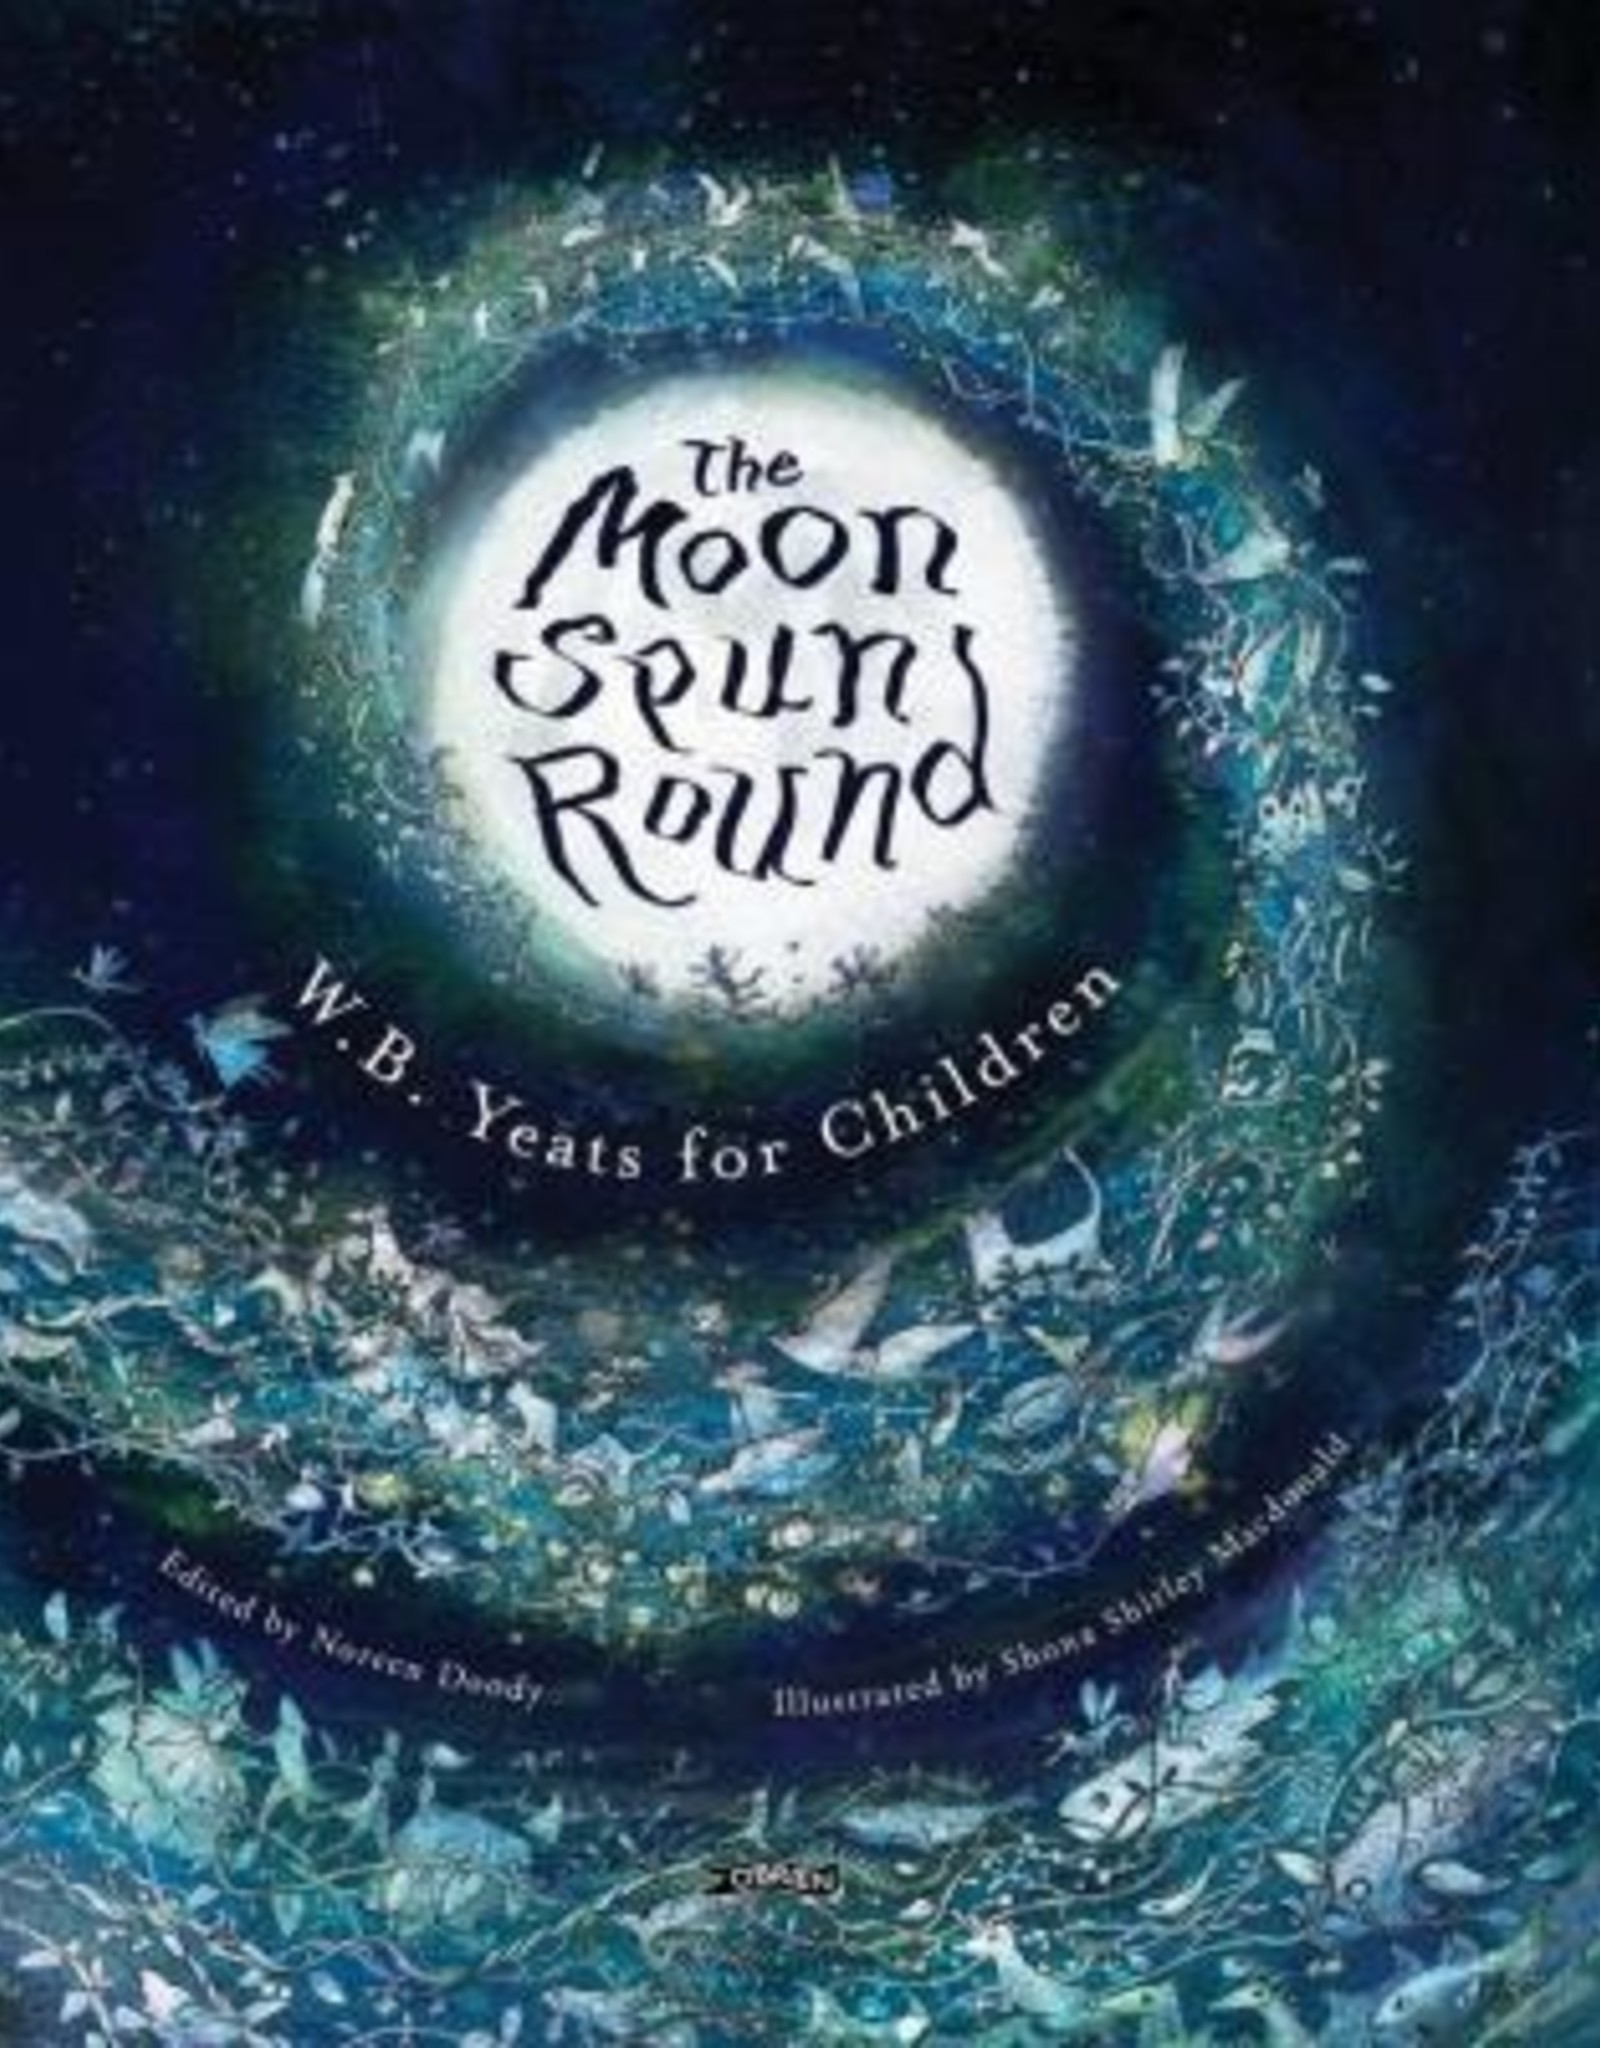 The Moon Spun Round; W.B. Yeats for Children